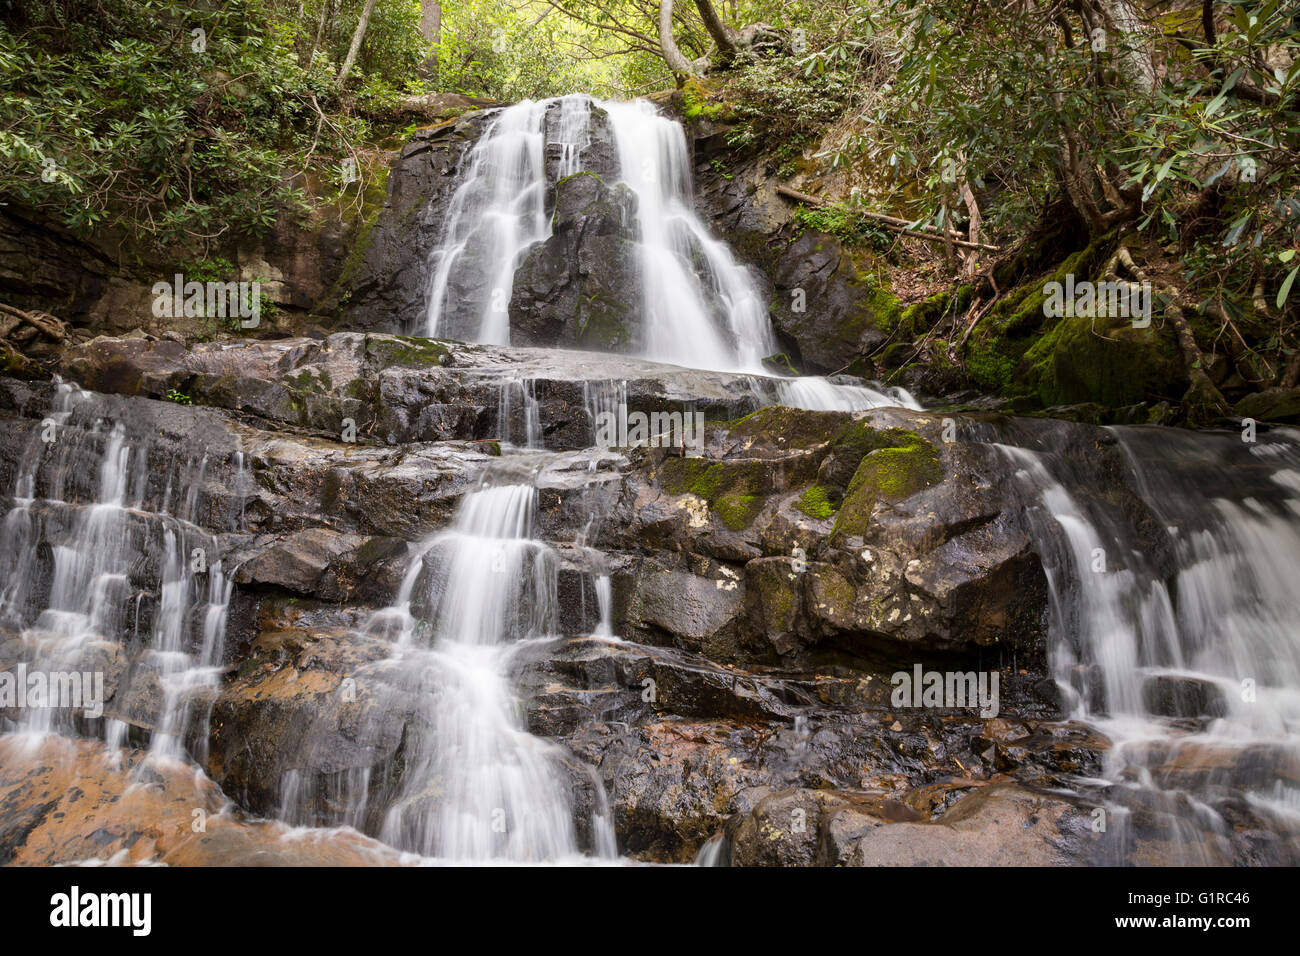 Great Smoky Mountains National Park, Tennessee - Laurel Falls. - Stock Image